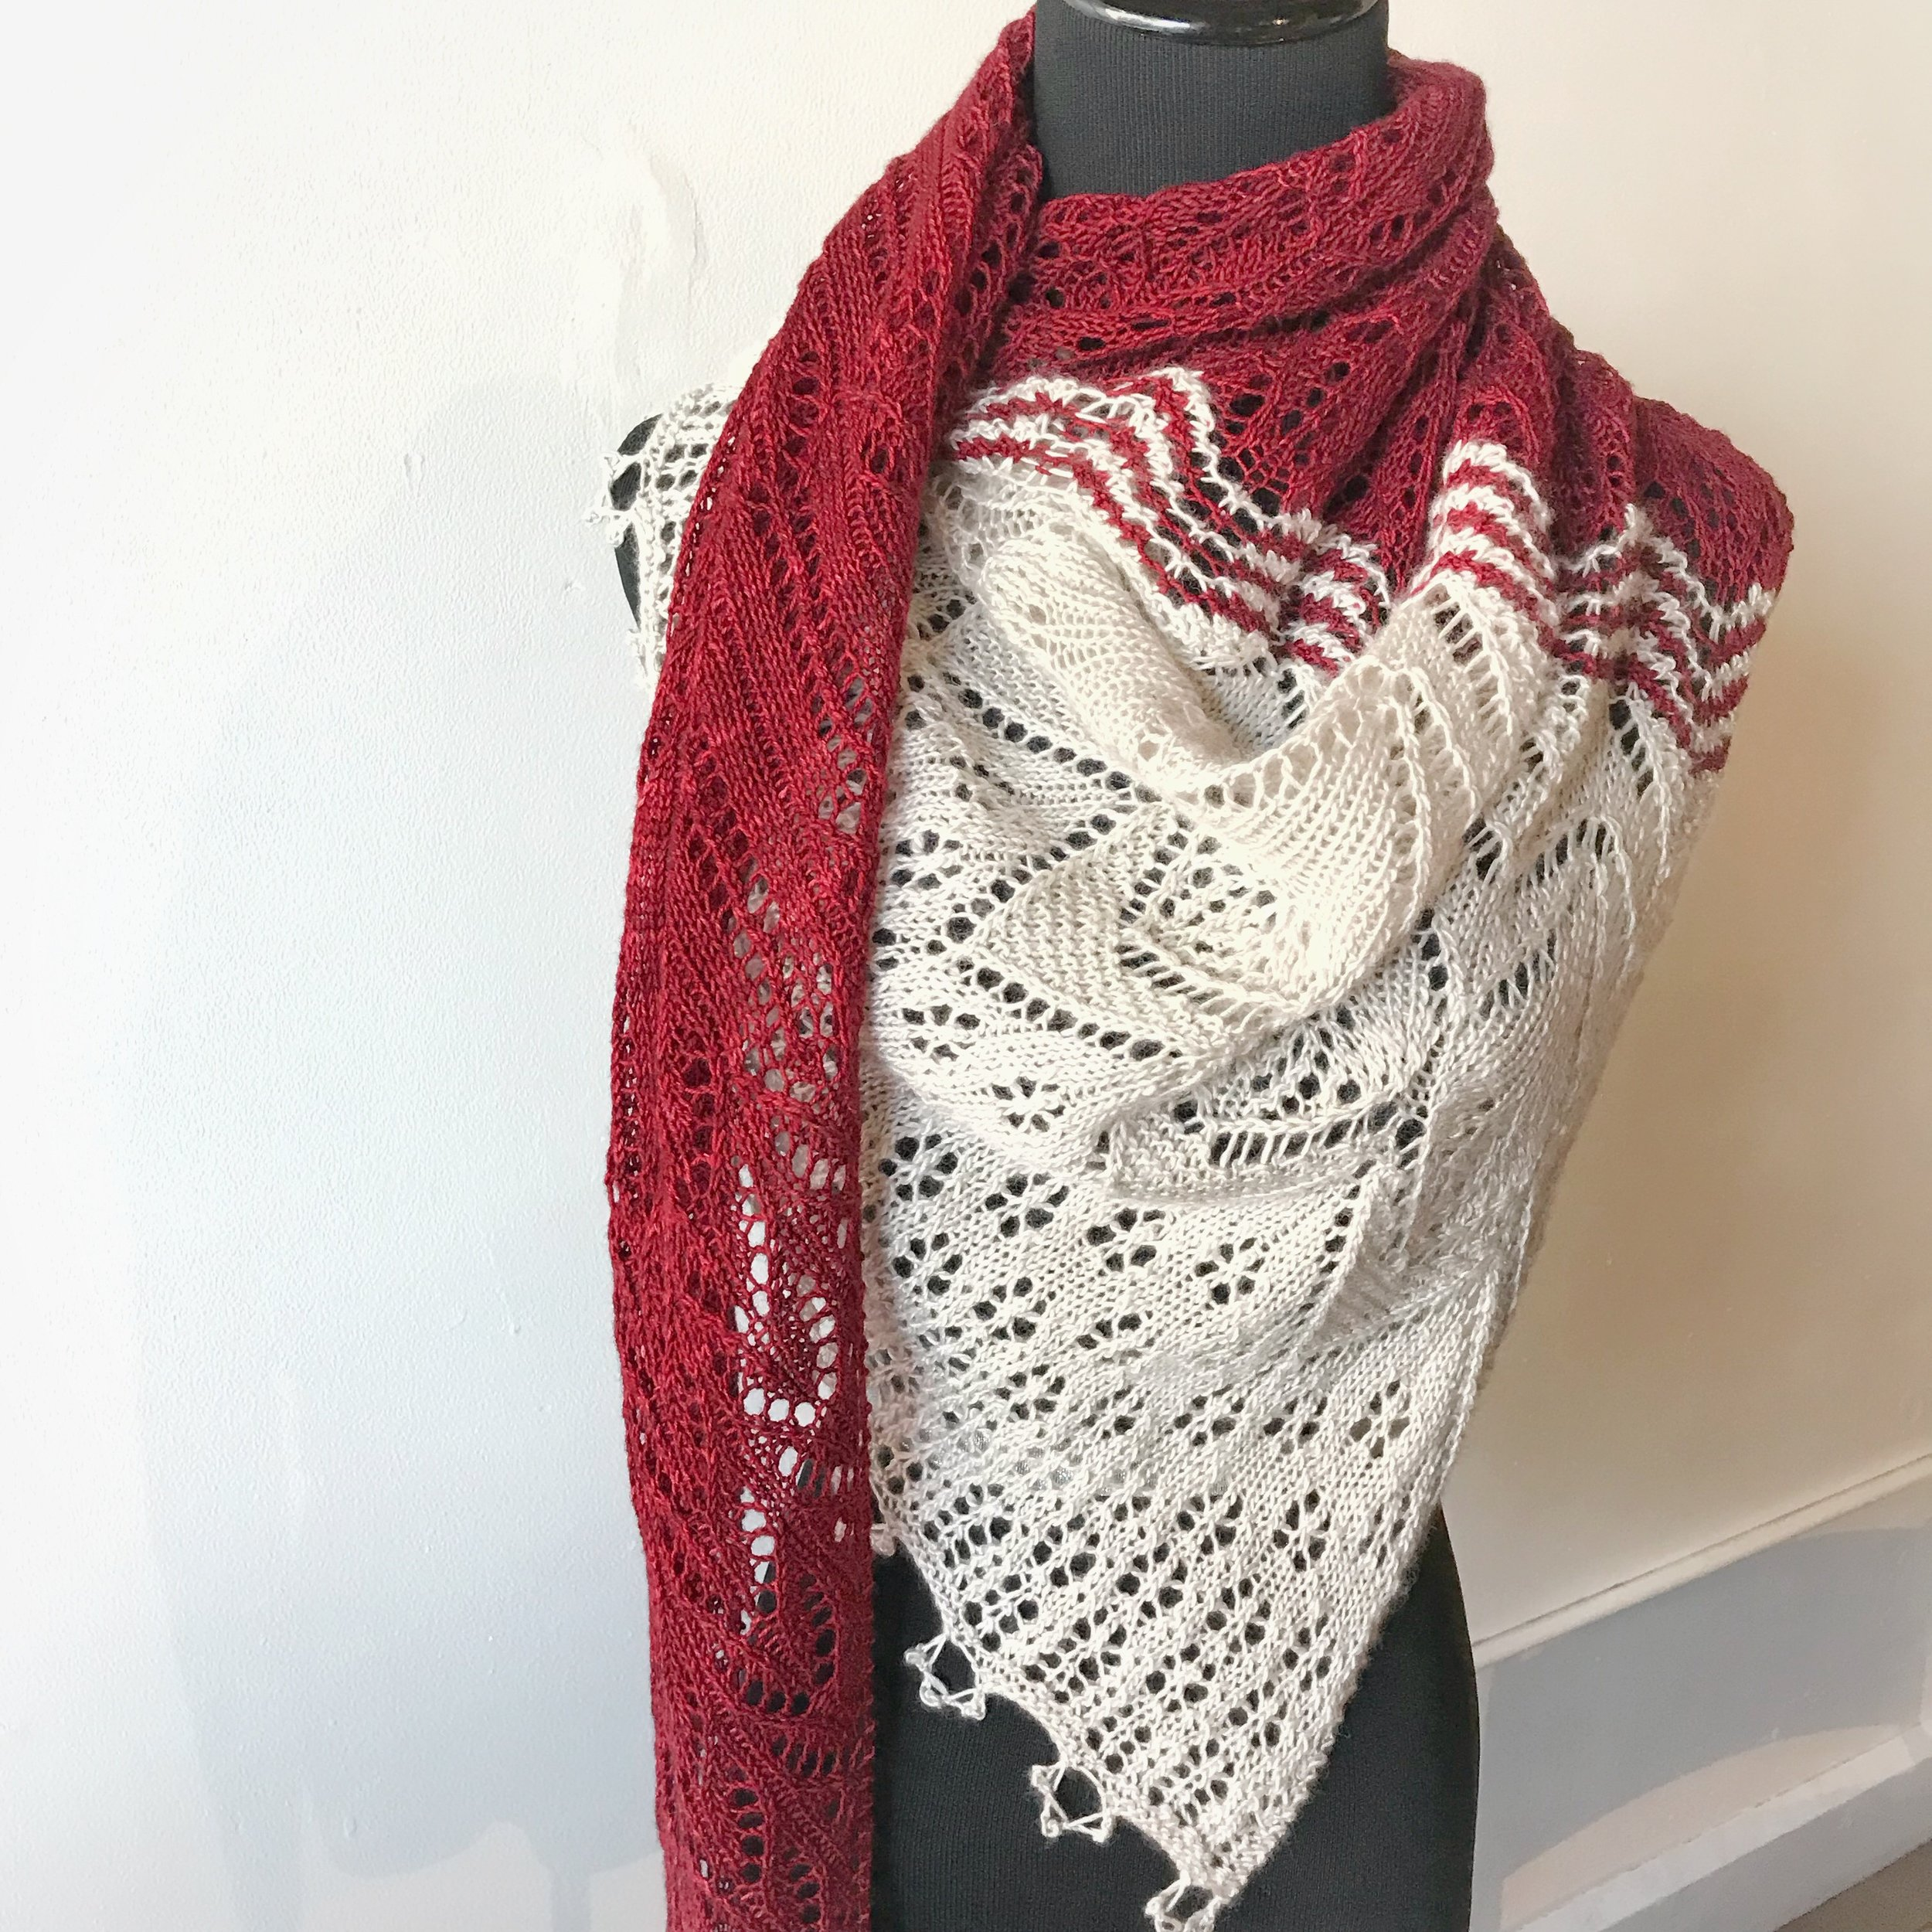 Through the Loops MKAL 2018 - Here is the Through the Loops Mystery Shawl 2018.This was such a pleasant pattern to knit--each new section provided new variation, and the different lace patterns flowed beautifully from one to the next. There are additional detail photos on my project page.